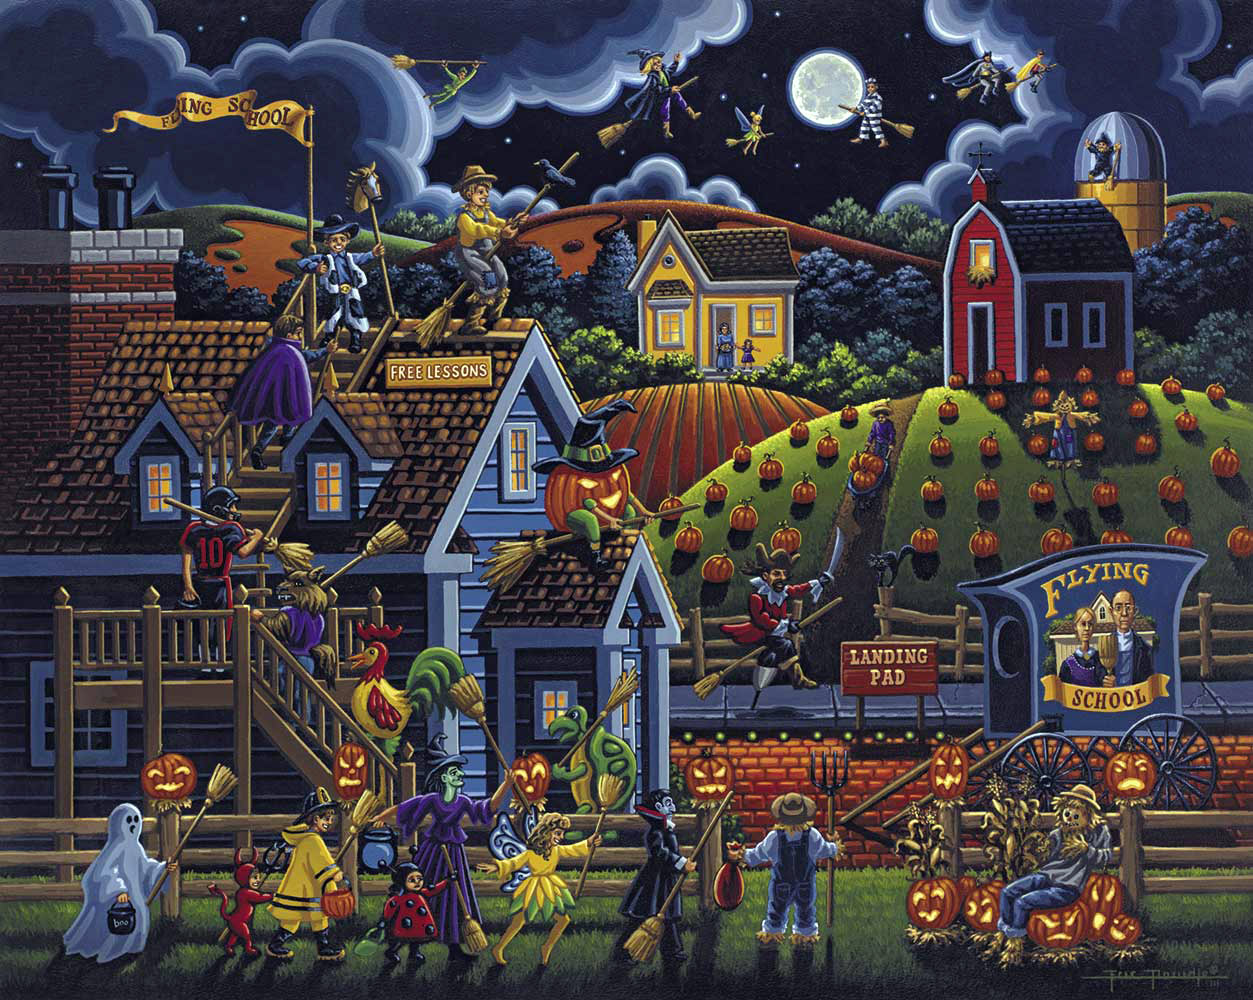 Flying School Halloween Jigsaw Puzzle